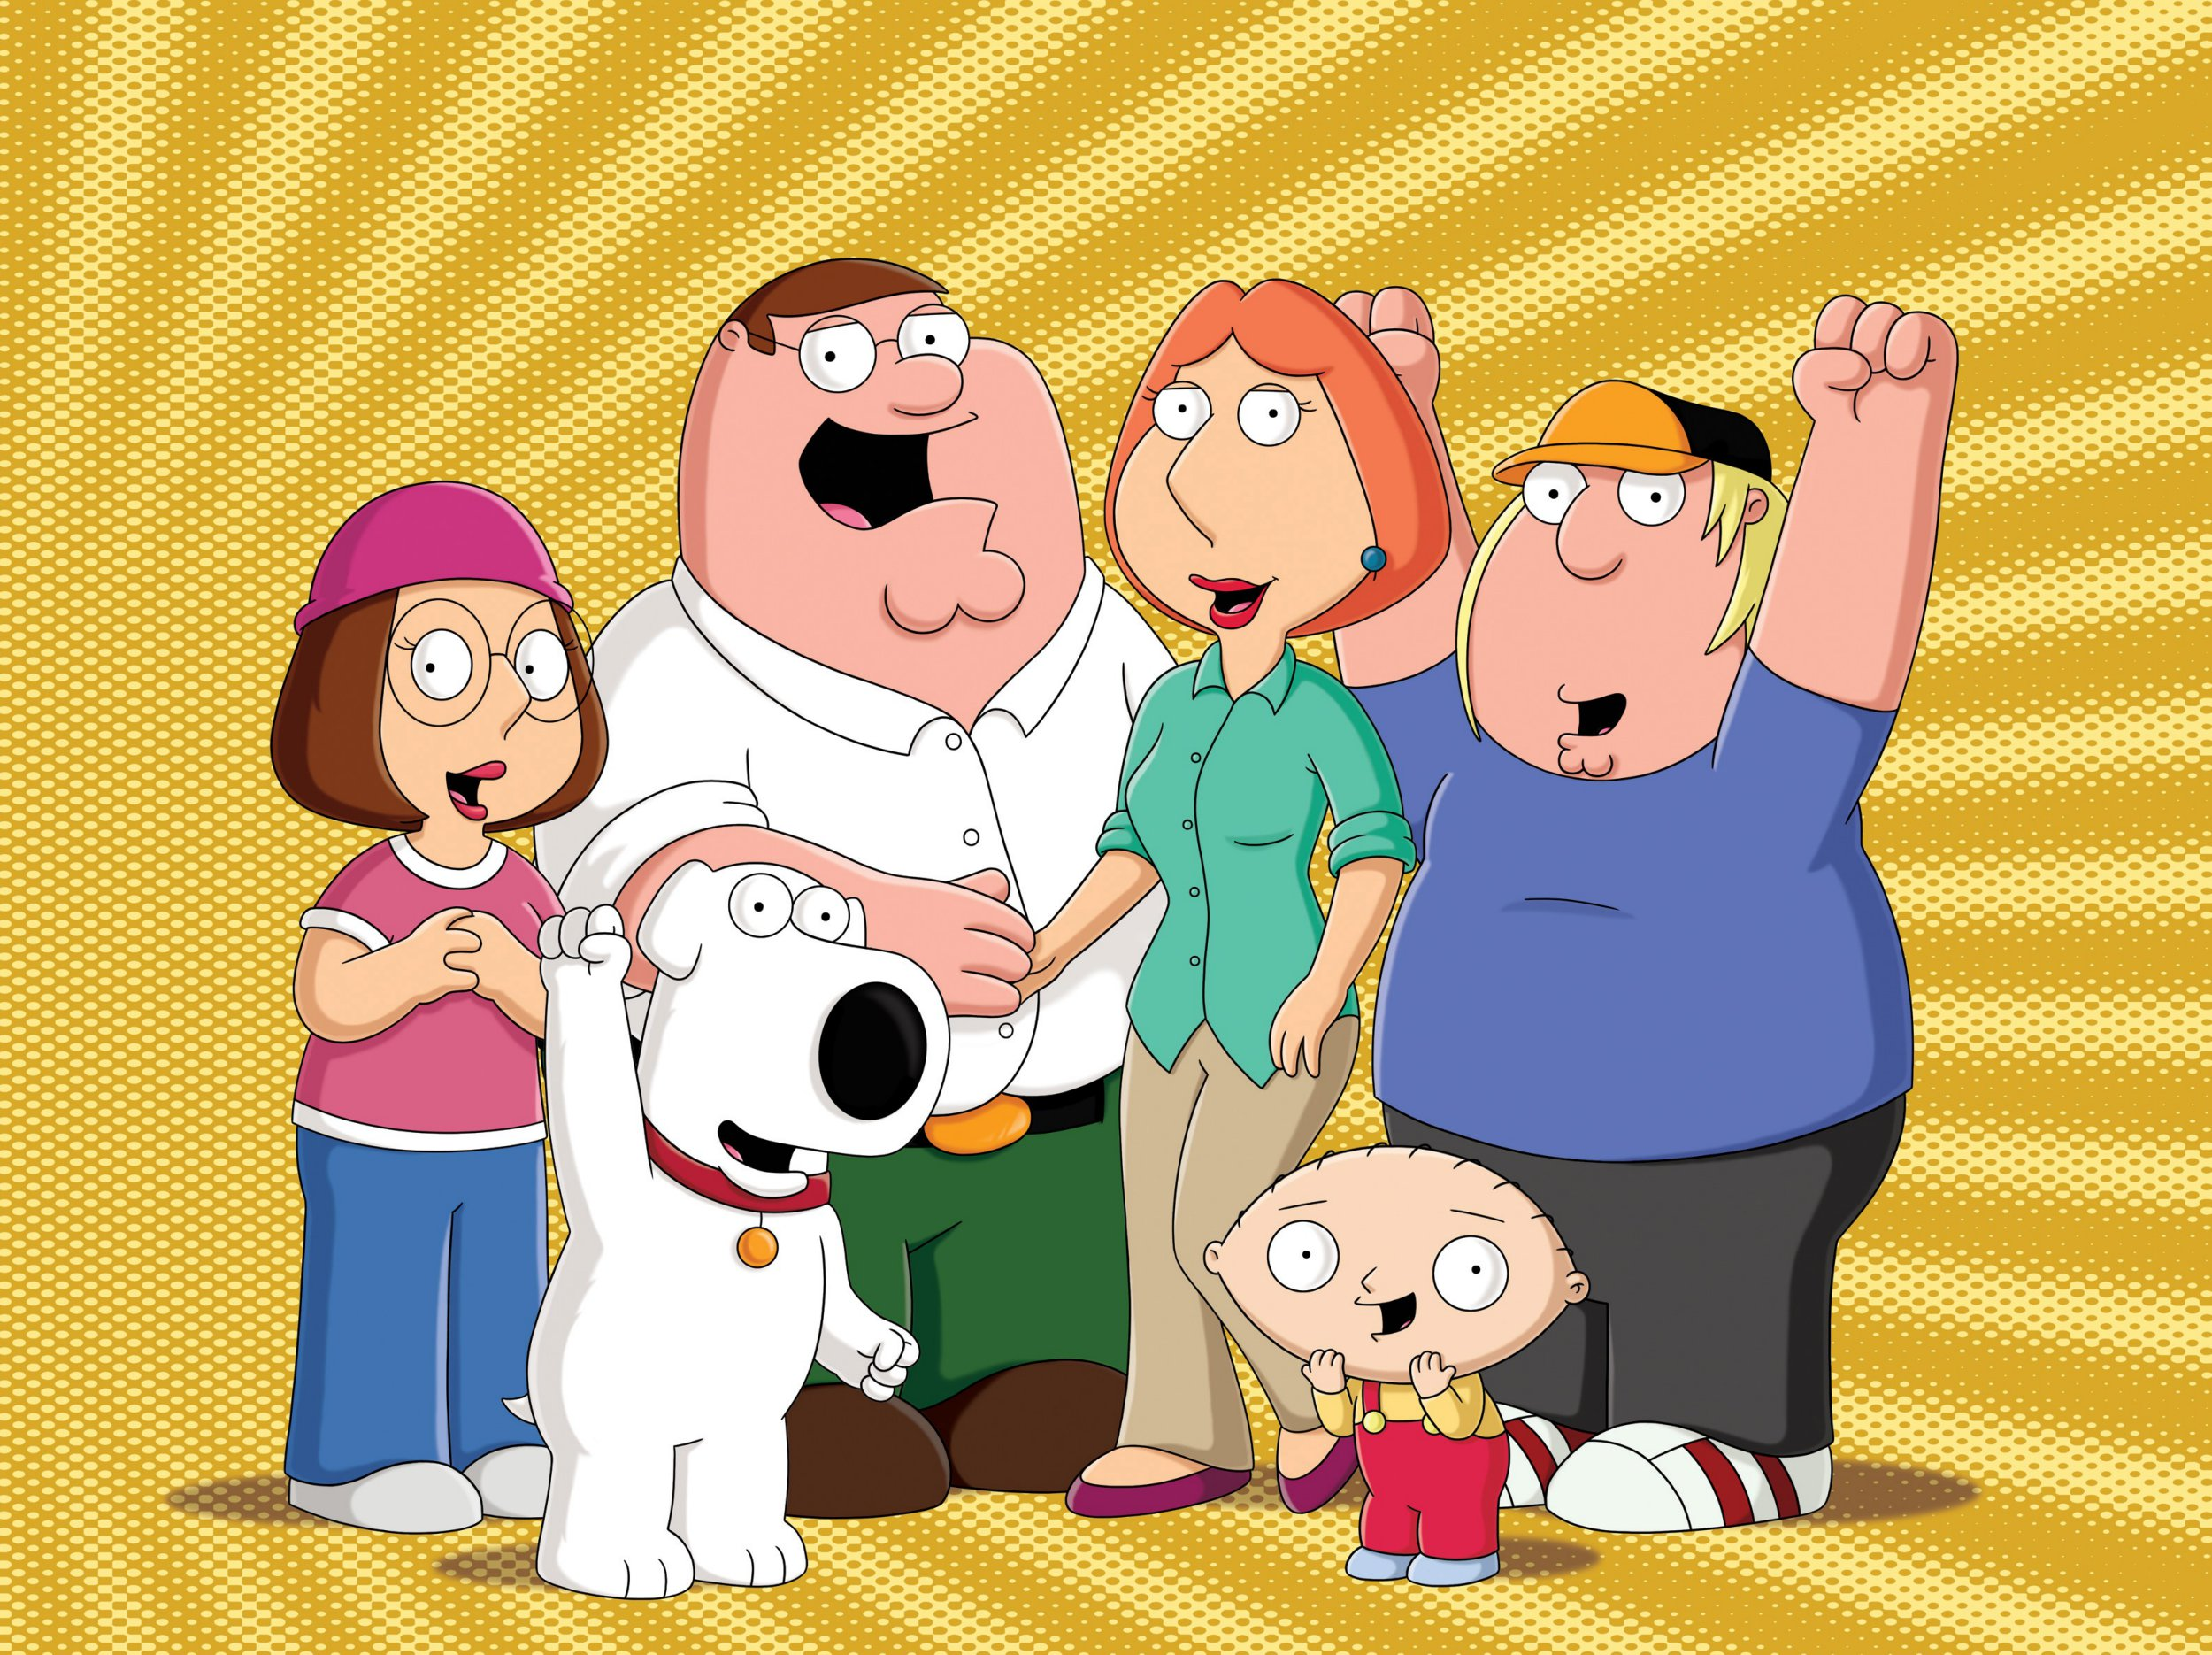 Editorial use only. No book cover usage. Mandatory Credit: Photo by Fox Tv/Seth Macfarlane/Kobal/REX/Shutterstock (5886296t) The Family Guy (1999-) The Family Guy - 1999 Fox TV/Seth Macfarlane USA Animation